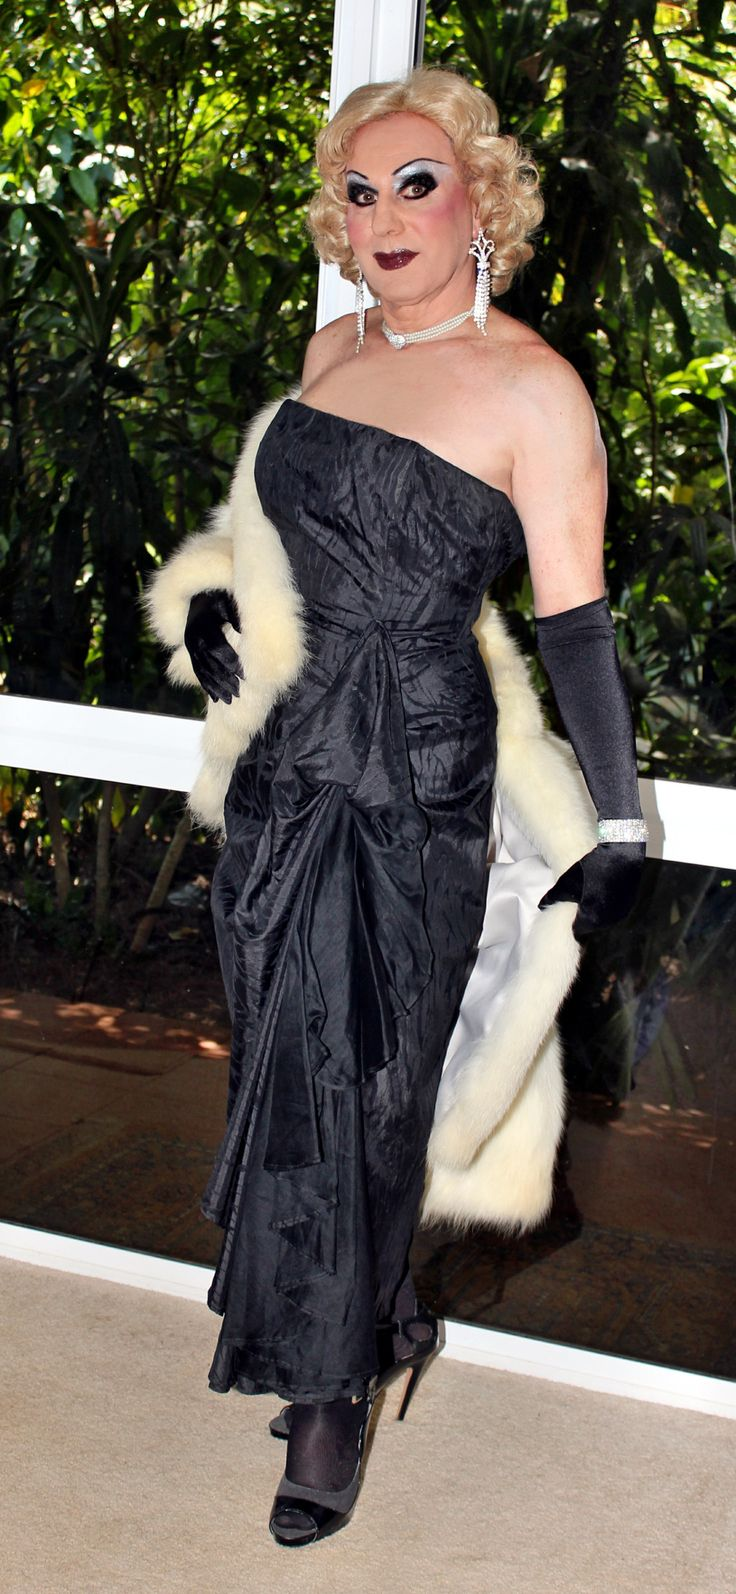 Black gloves for gown - Black Evening Gown